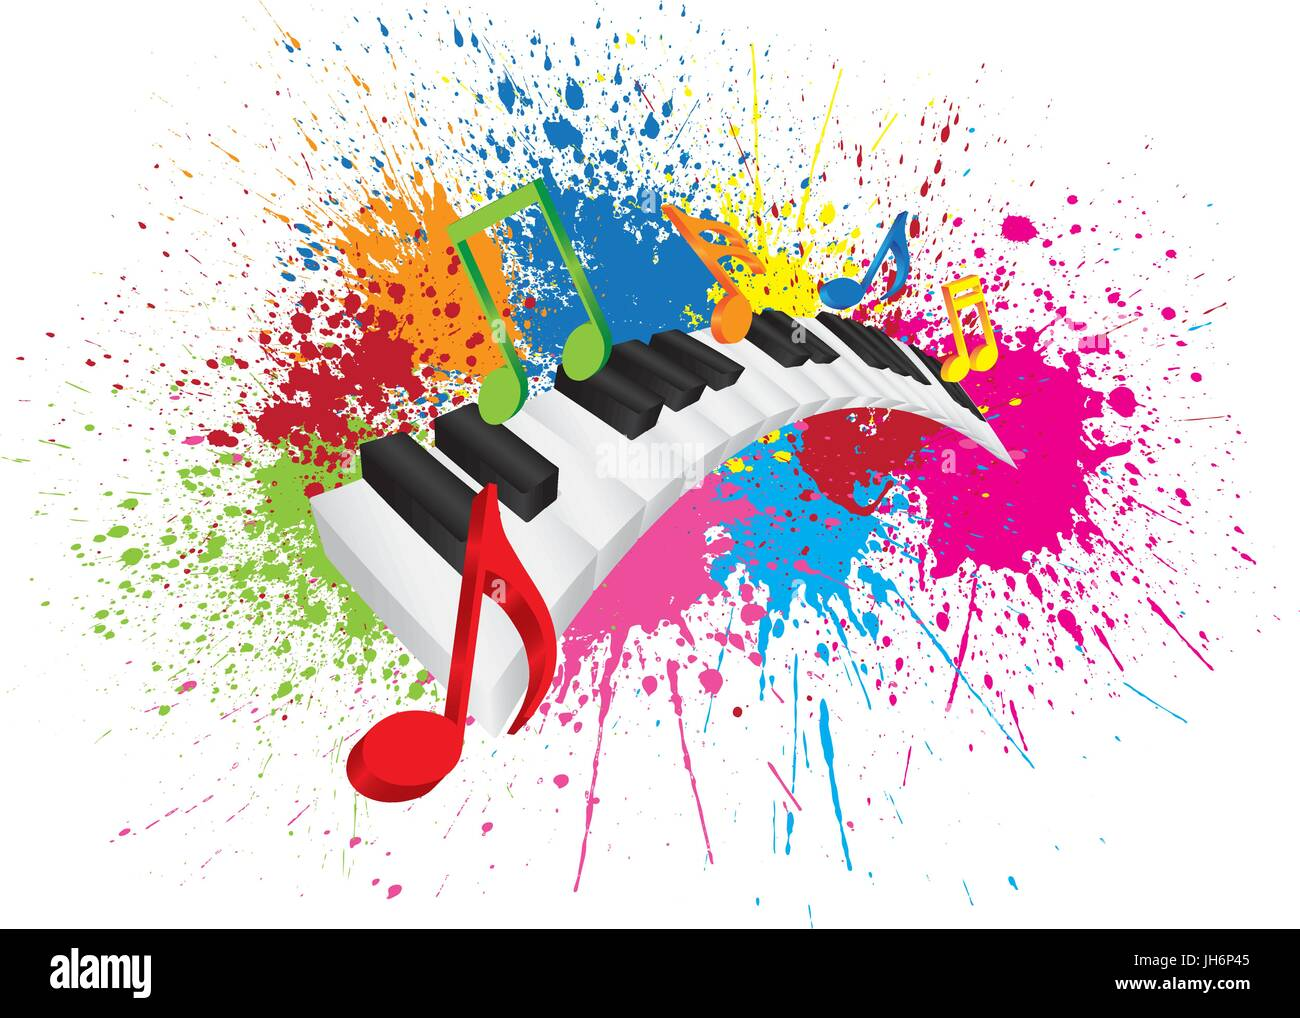 Piano Keyboard with Black and White Wavy Keys and Colorful Music Notes in 3D Paint Splatter Abstract Color Illustration - Stock Vector